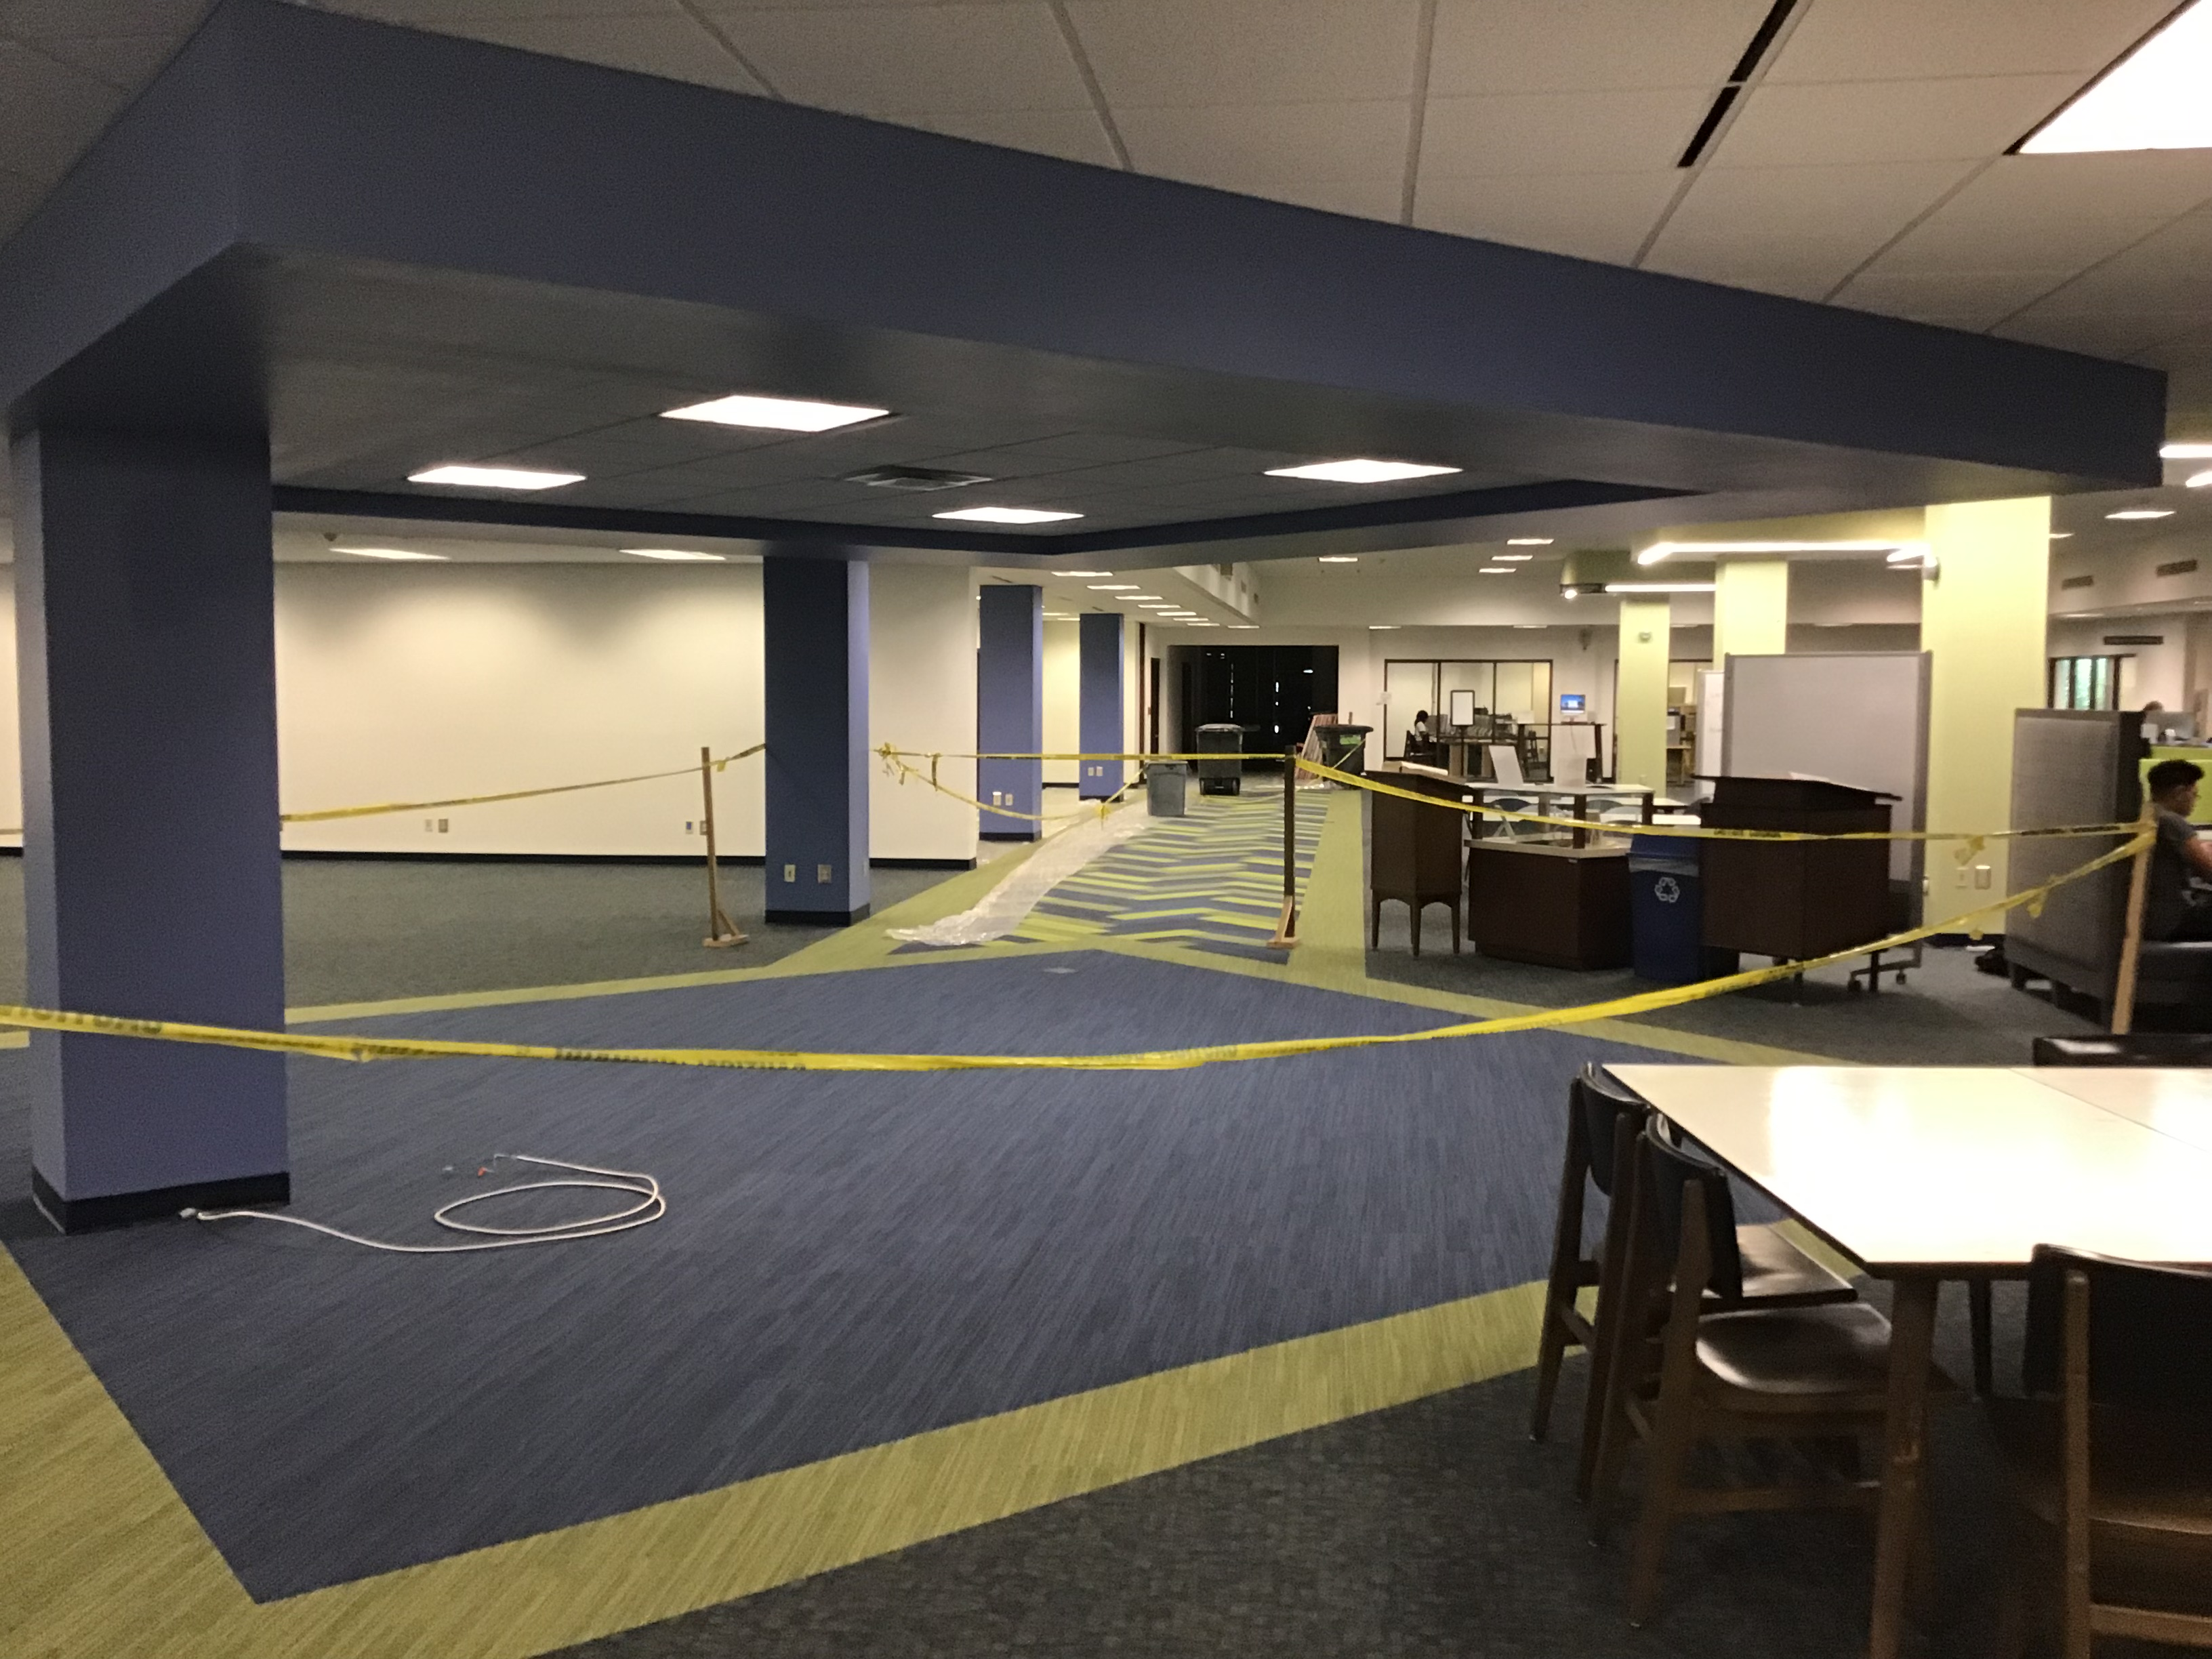 Image site of the new circulation desk